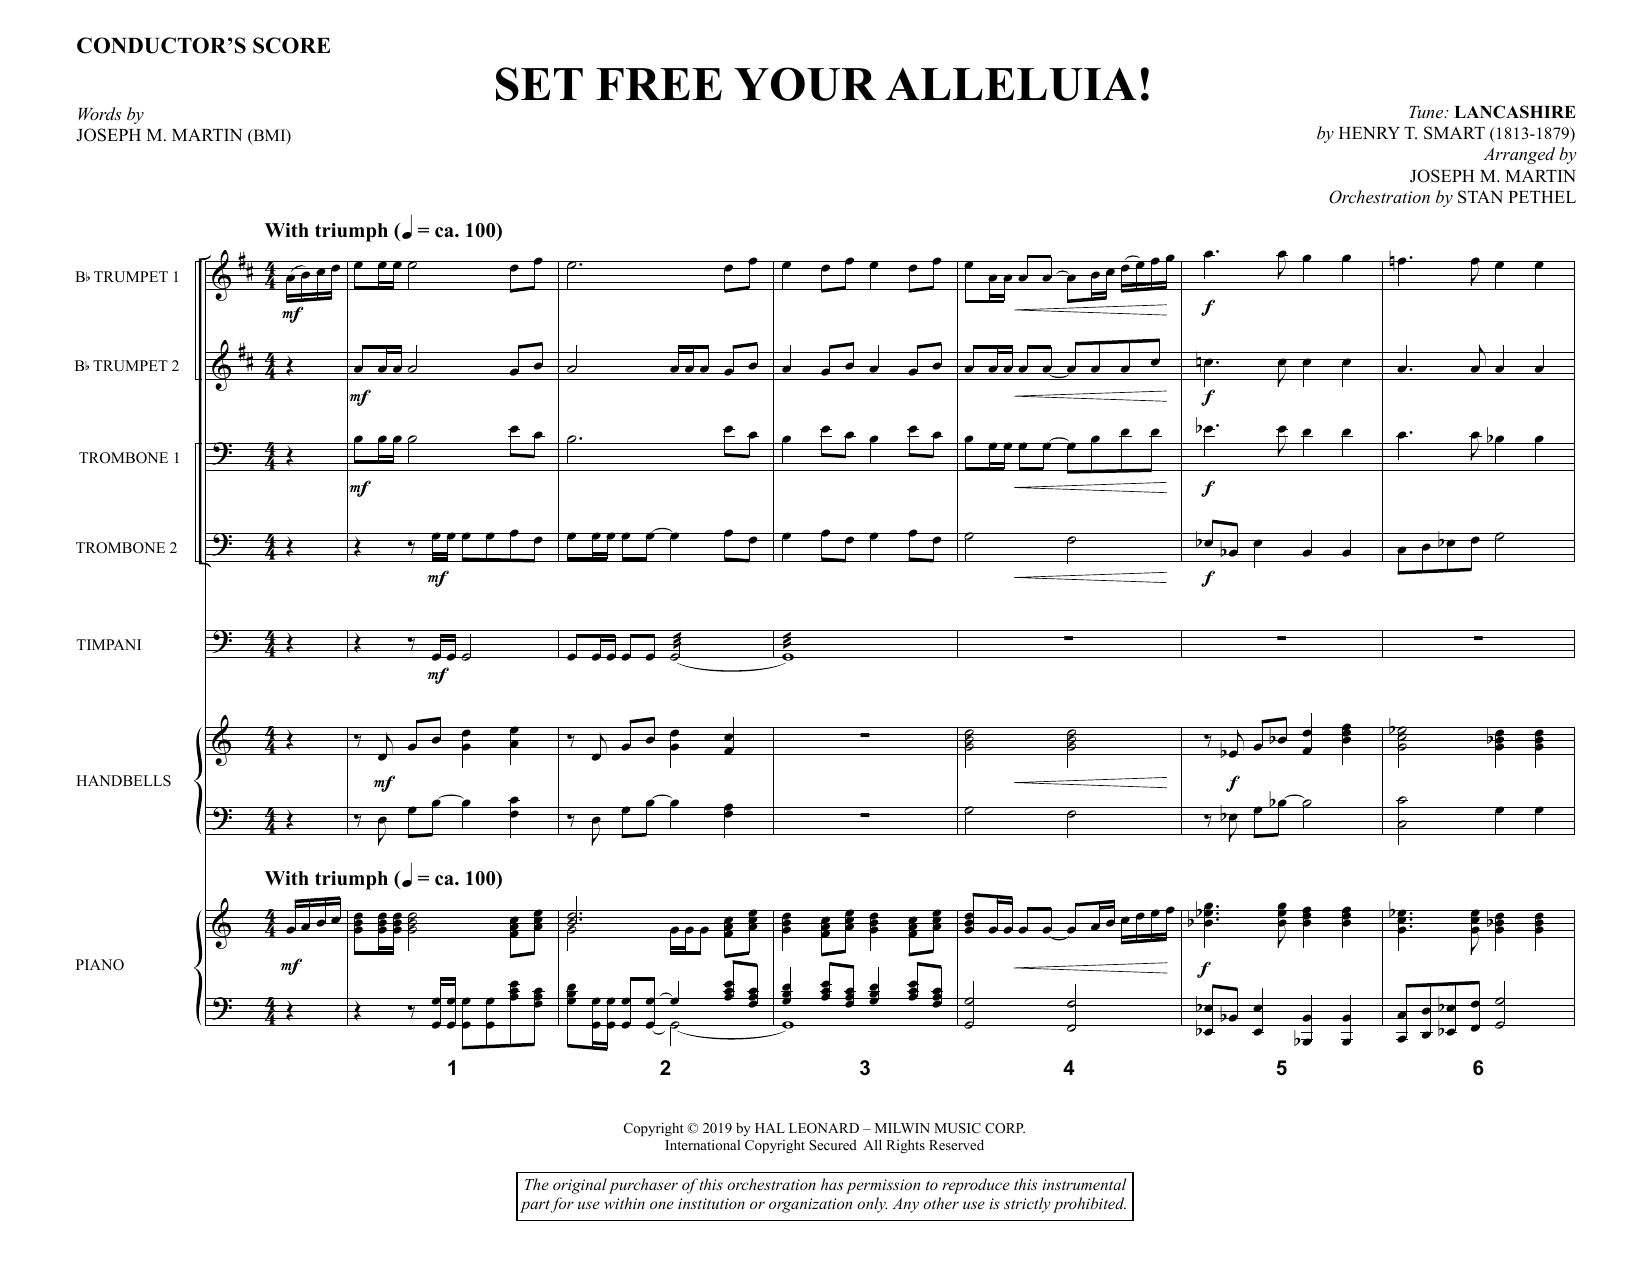 Joseph M. Martin Set Free Your Alleluia! - Full Score sheet music notes and chords. Download Printable PDF.